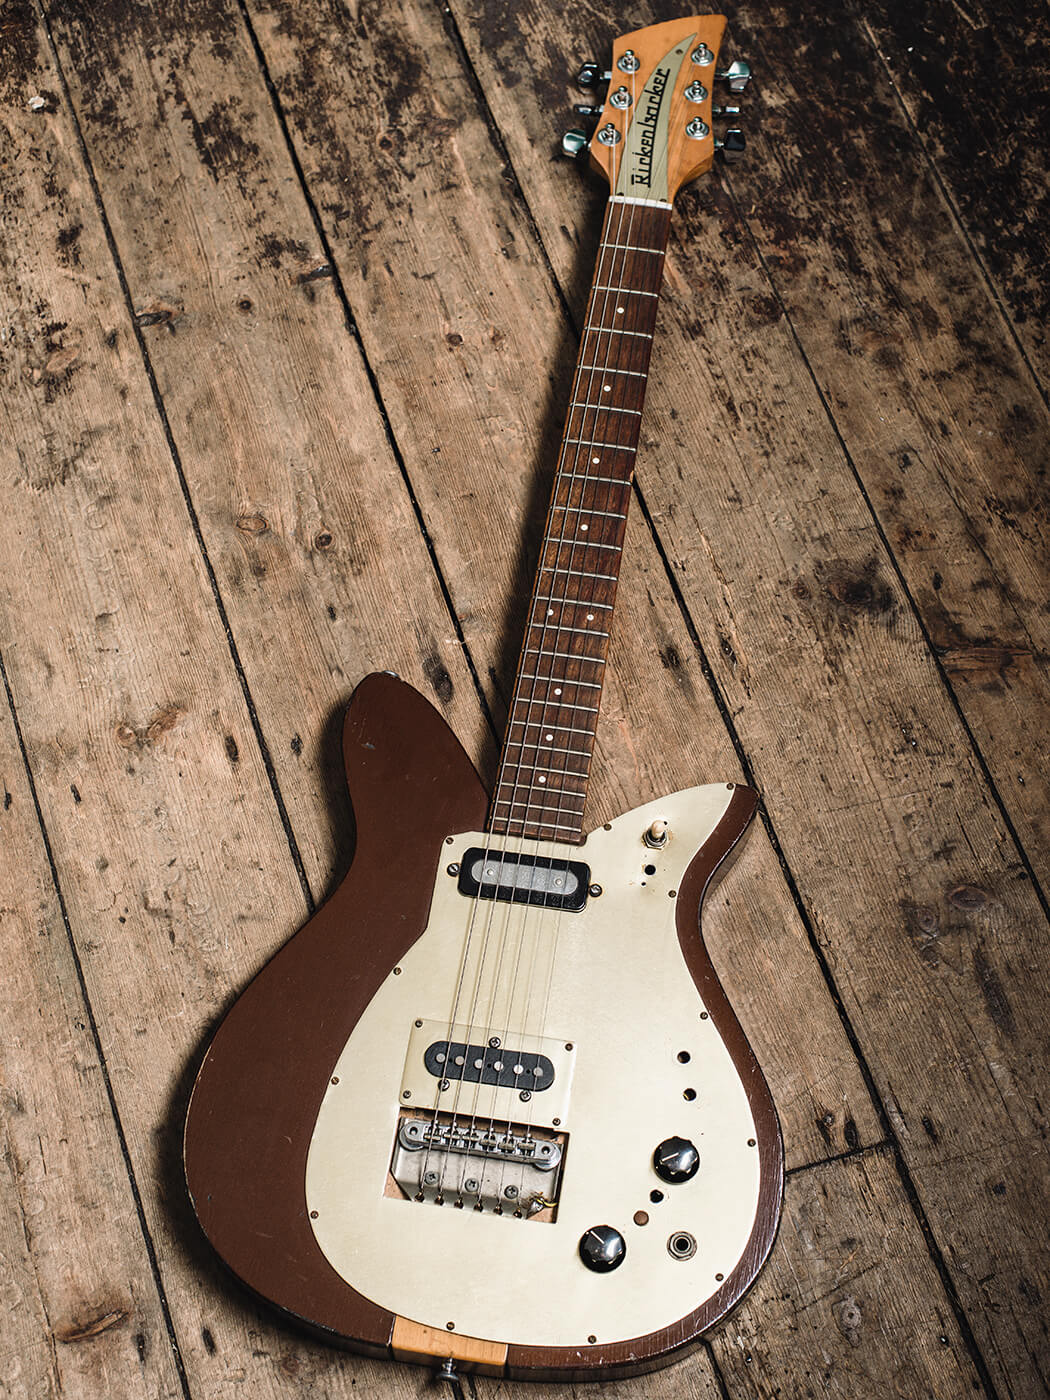 Rory Gallagher's Rickenbacker Combo 400.